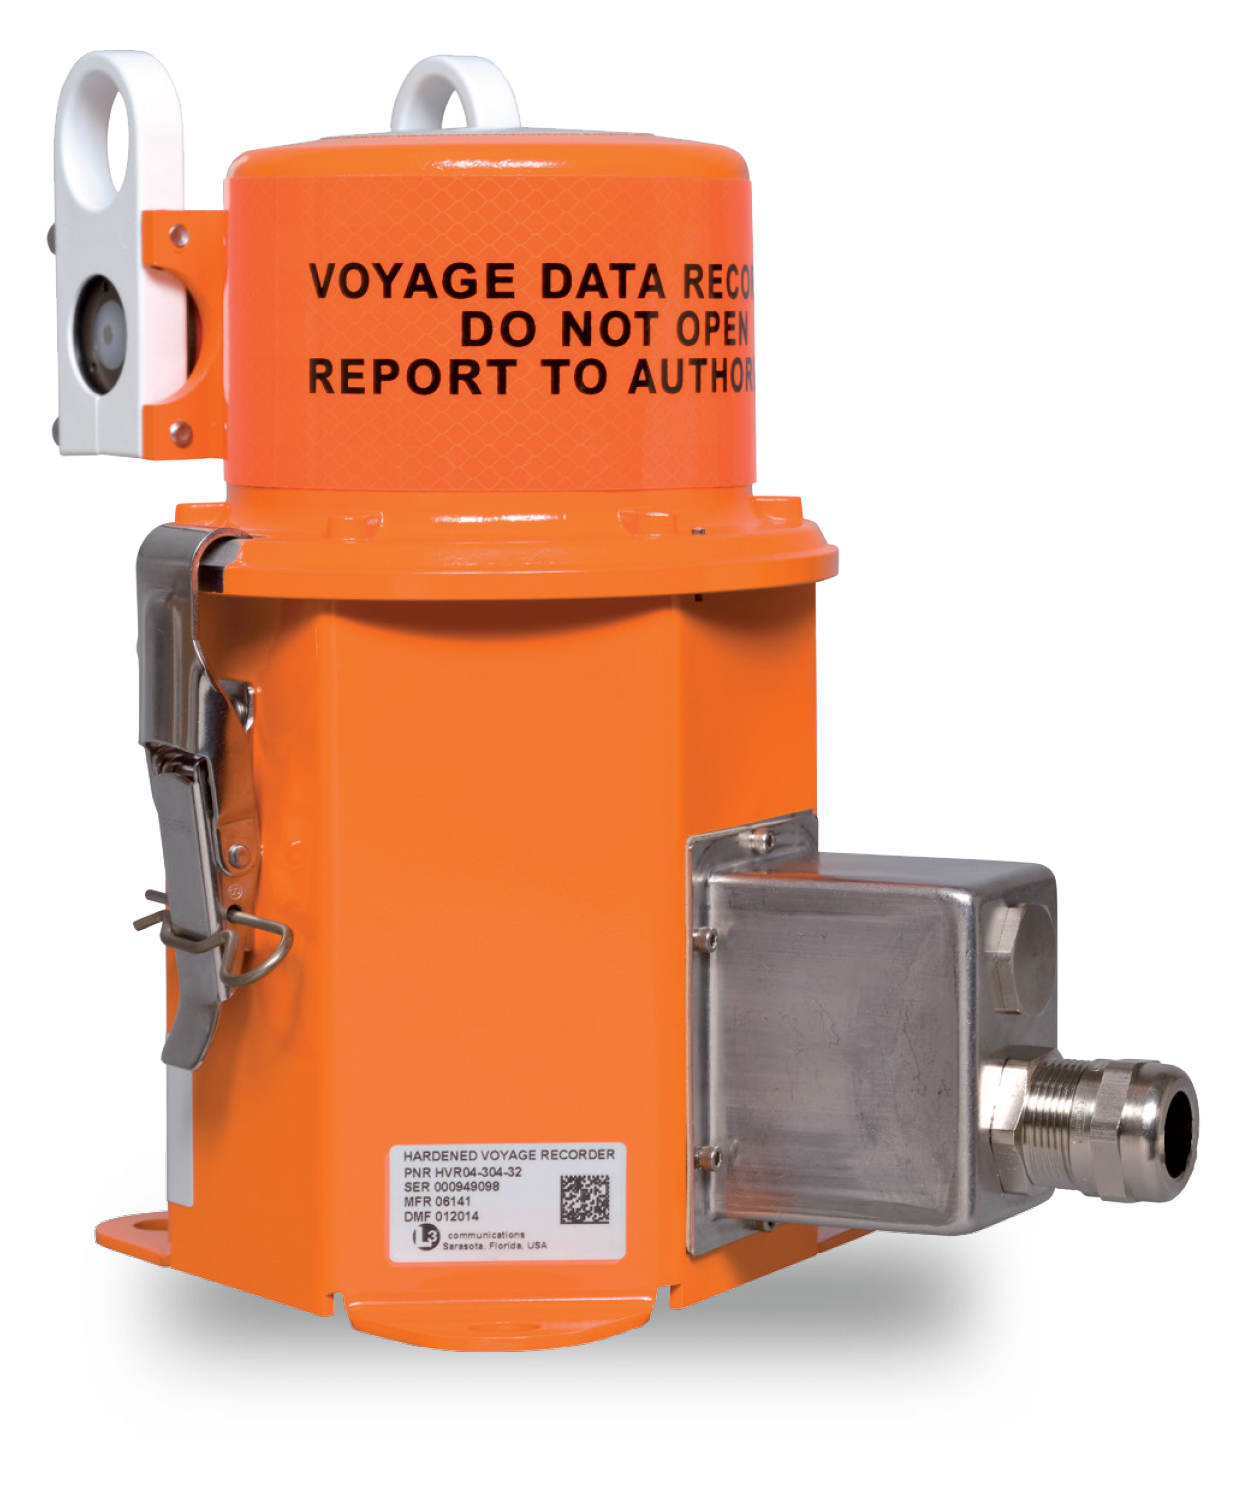 JRC VOYAGE DATA RECORDER MODEL JCY-1950